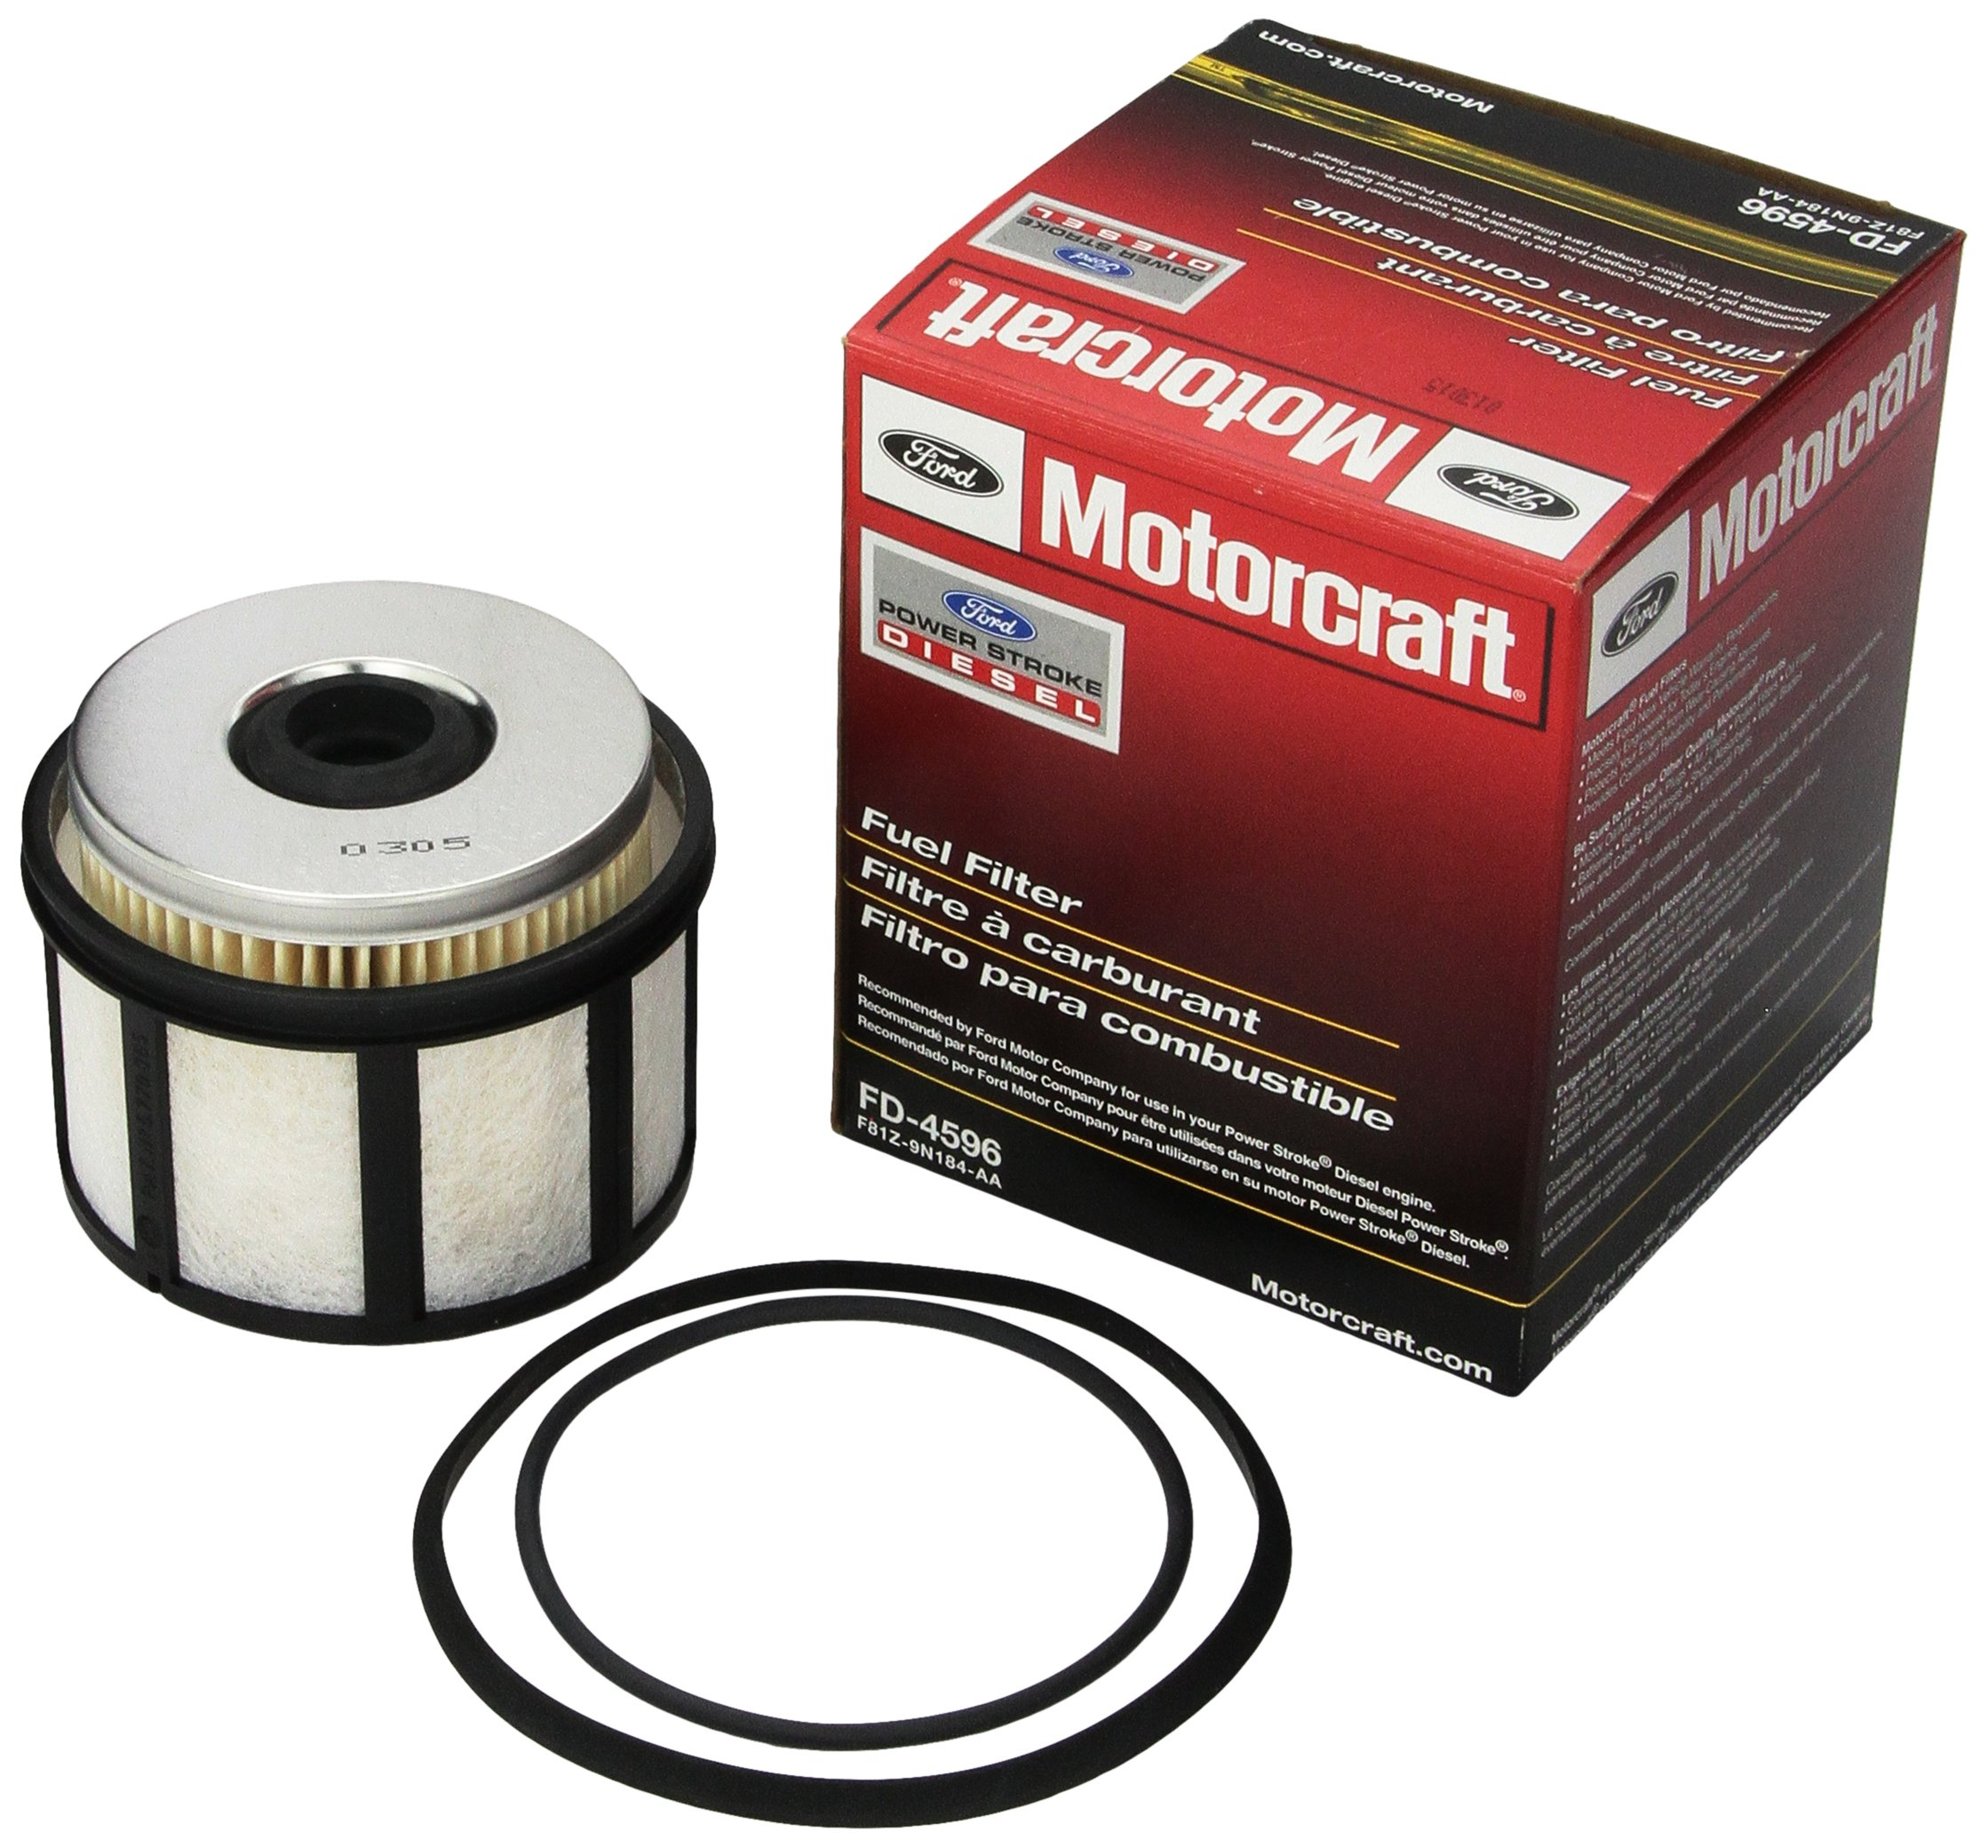 93 Toyota Previa Fuel Filter Drawing 2000 Ford E350 Housing Wiring Library Amazoncom Motorcraft Fd 4596 Element Automotive Dorman